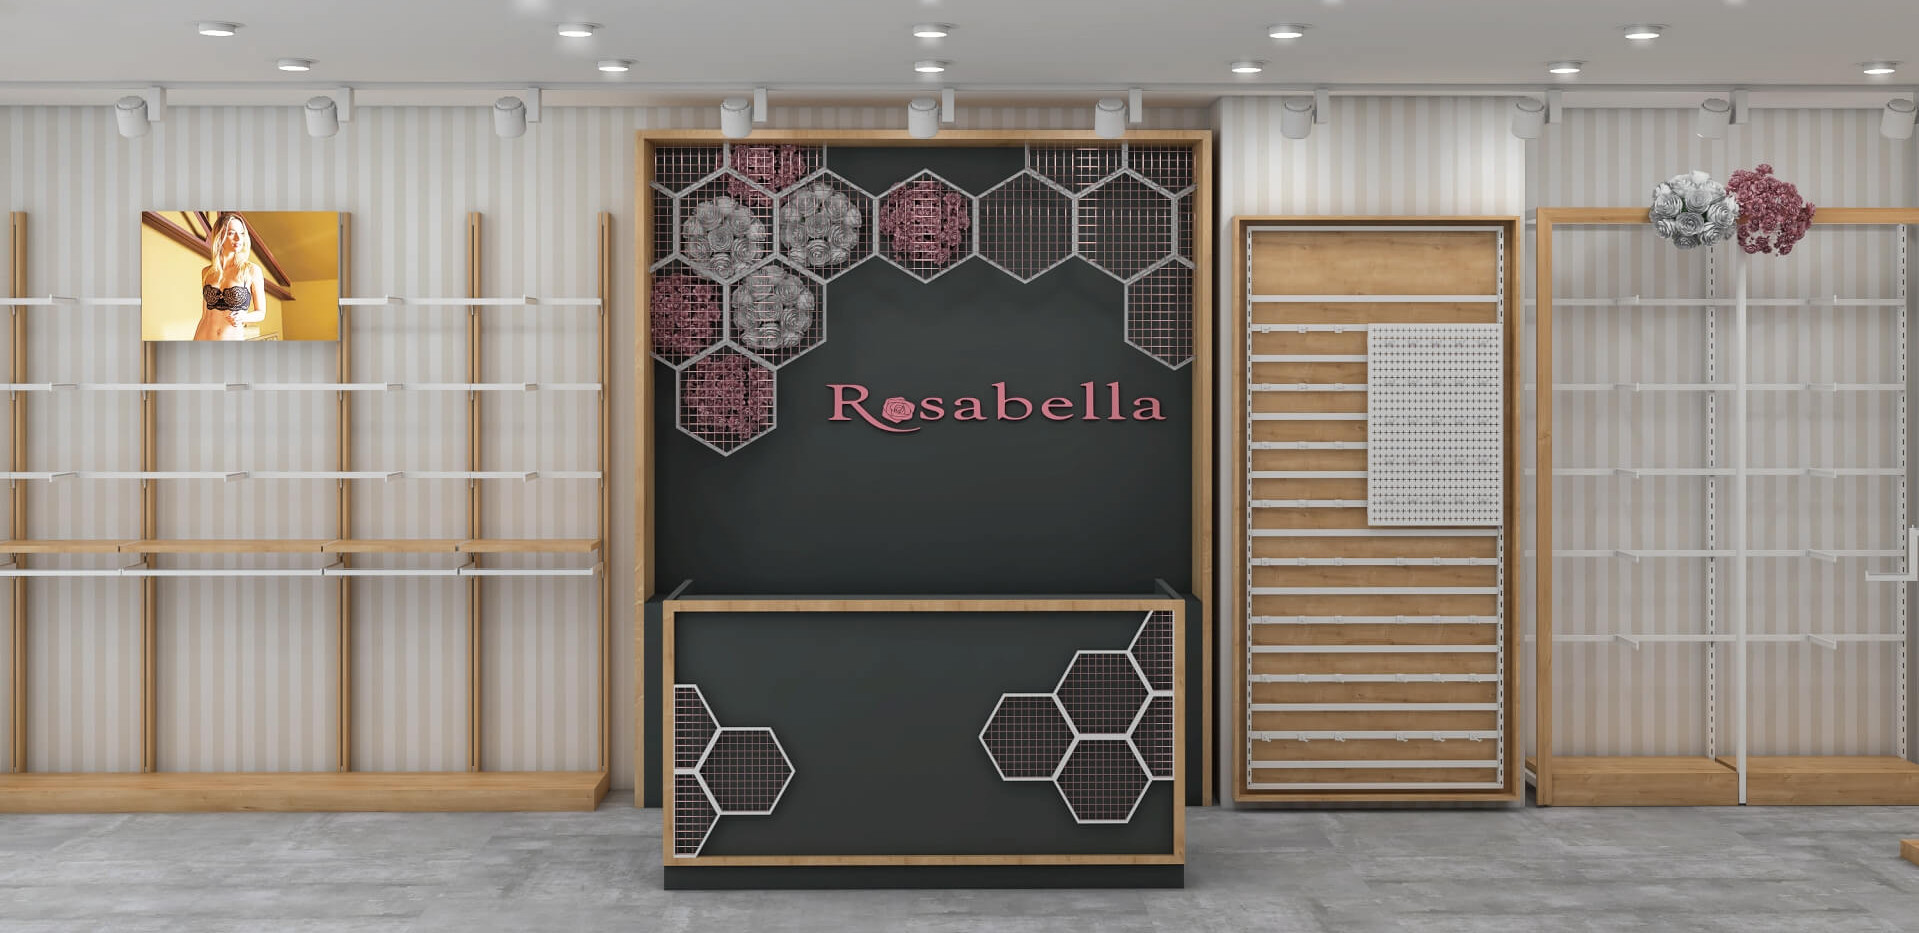 Rosabella - Fashion Store Shop Design-2.